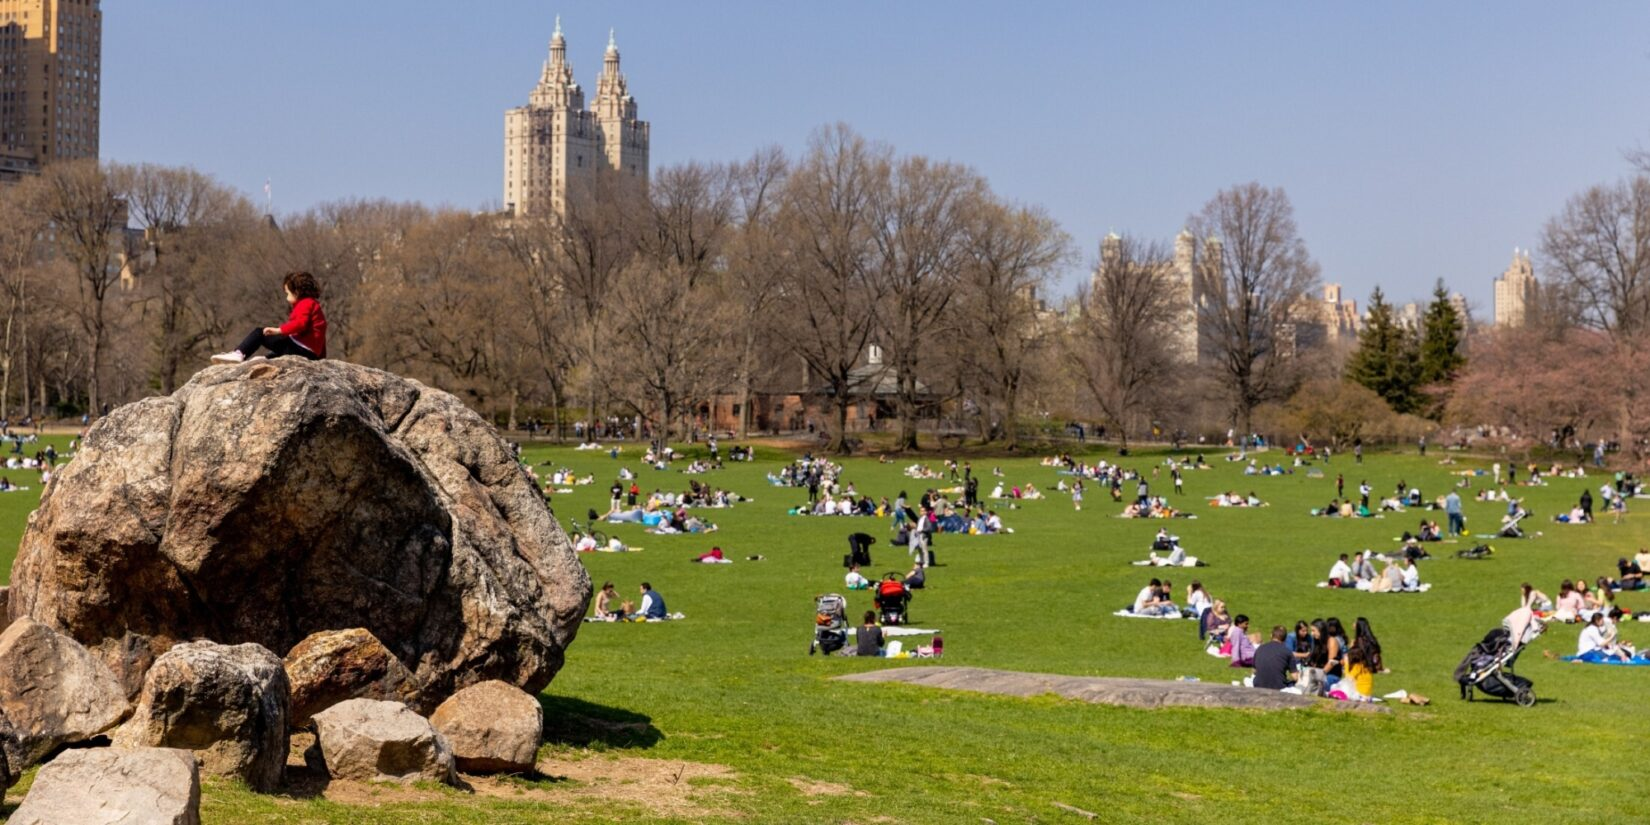 Park-goers on the Sheep Meadow enjoying a crisp Fall day. One visitor sits atop a large boulder.